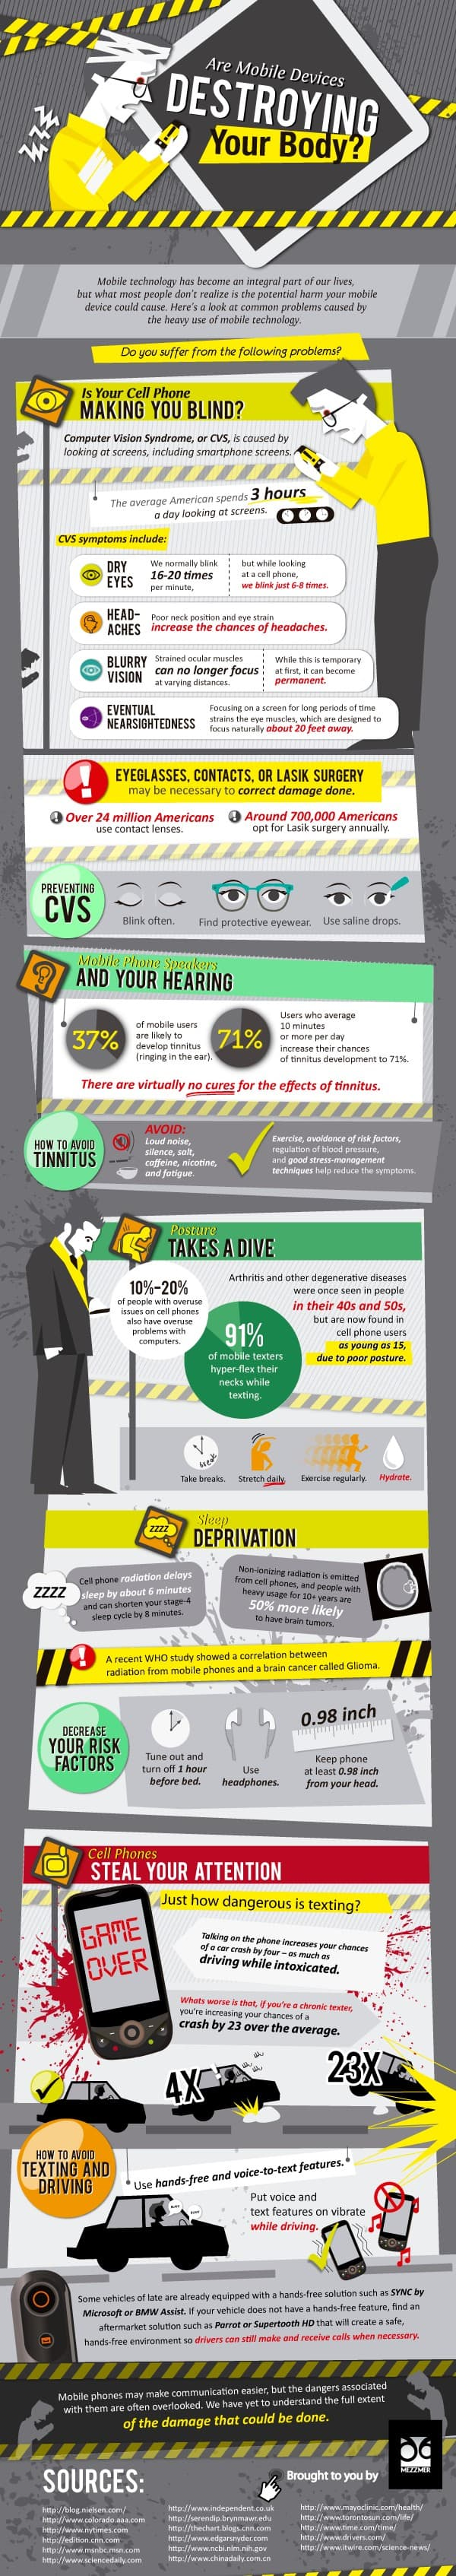 Infographic Are mobile devices destroying your body